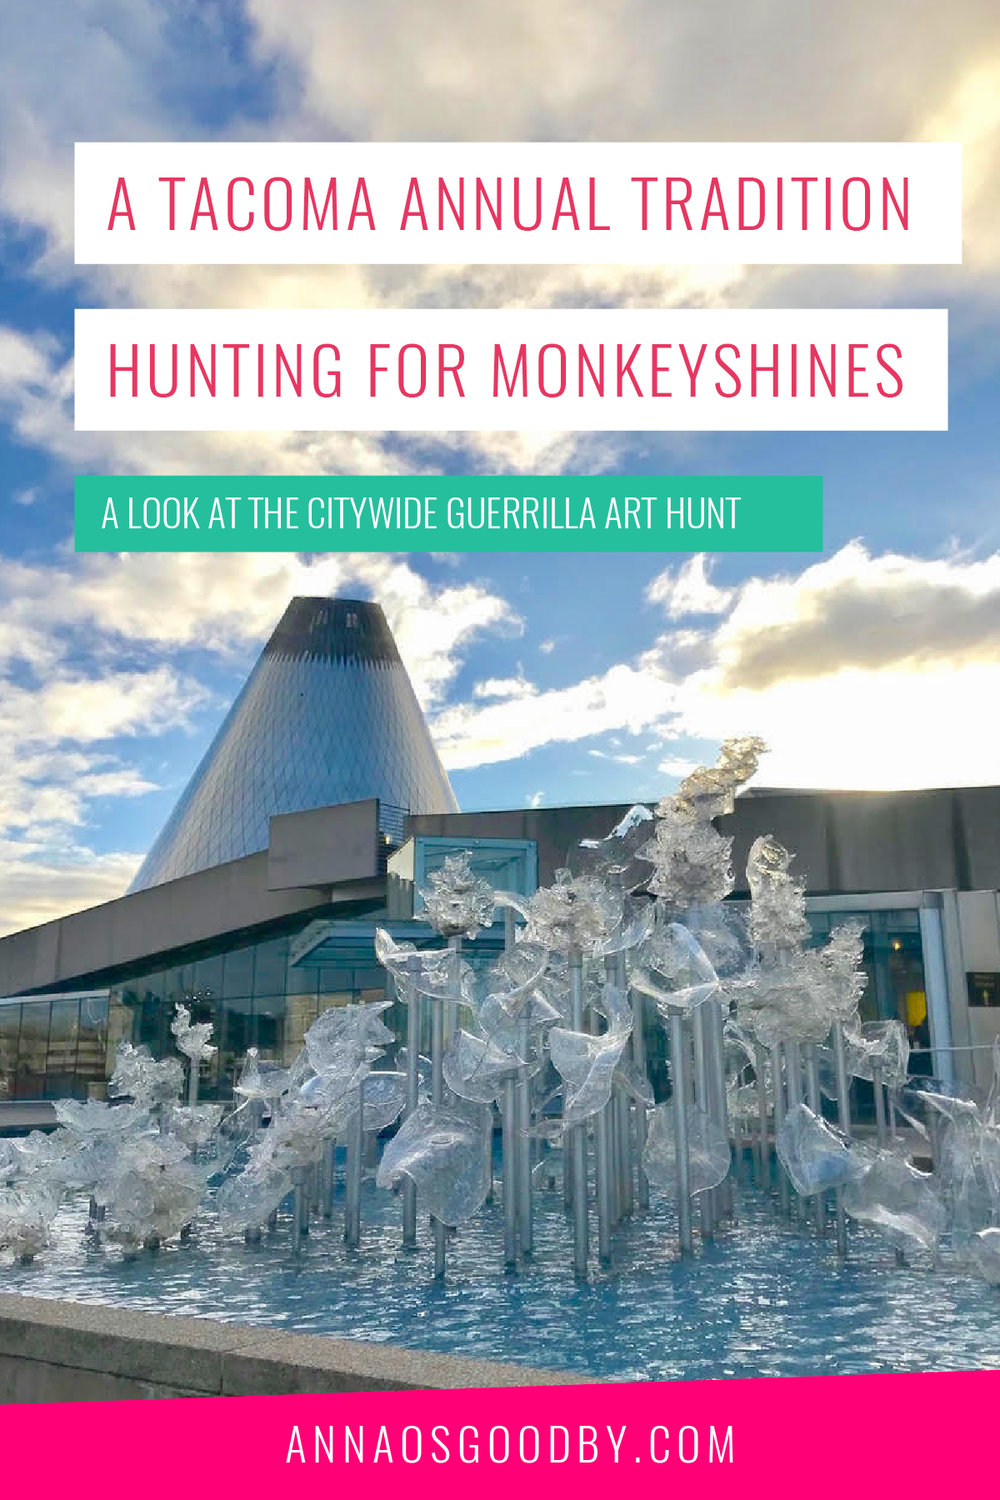 Anna Osgoodby Life + Biz: A Tacoma Annual Tradition Hunting for Monkeyshines: A Look at the Citywide Guerrilla Art Hunt